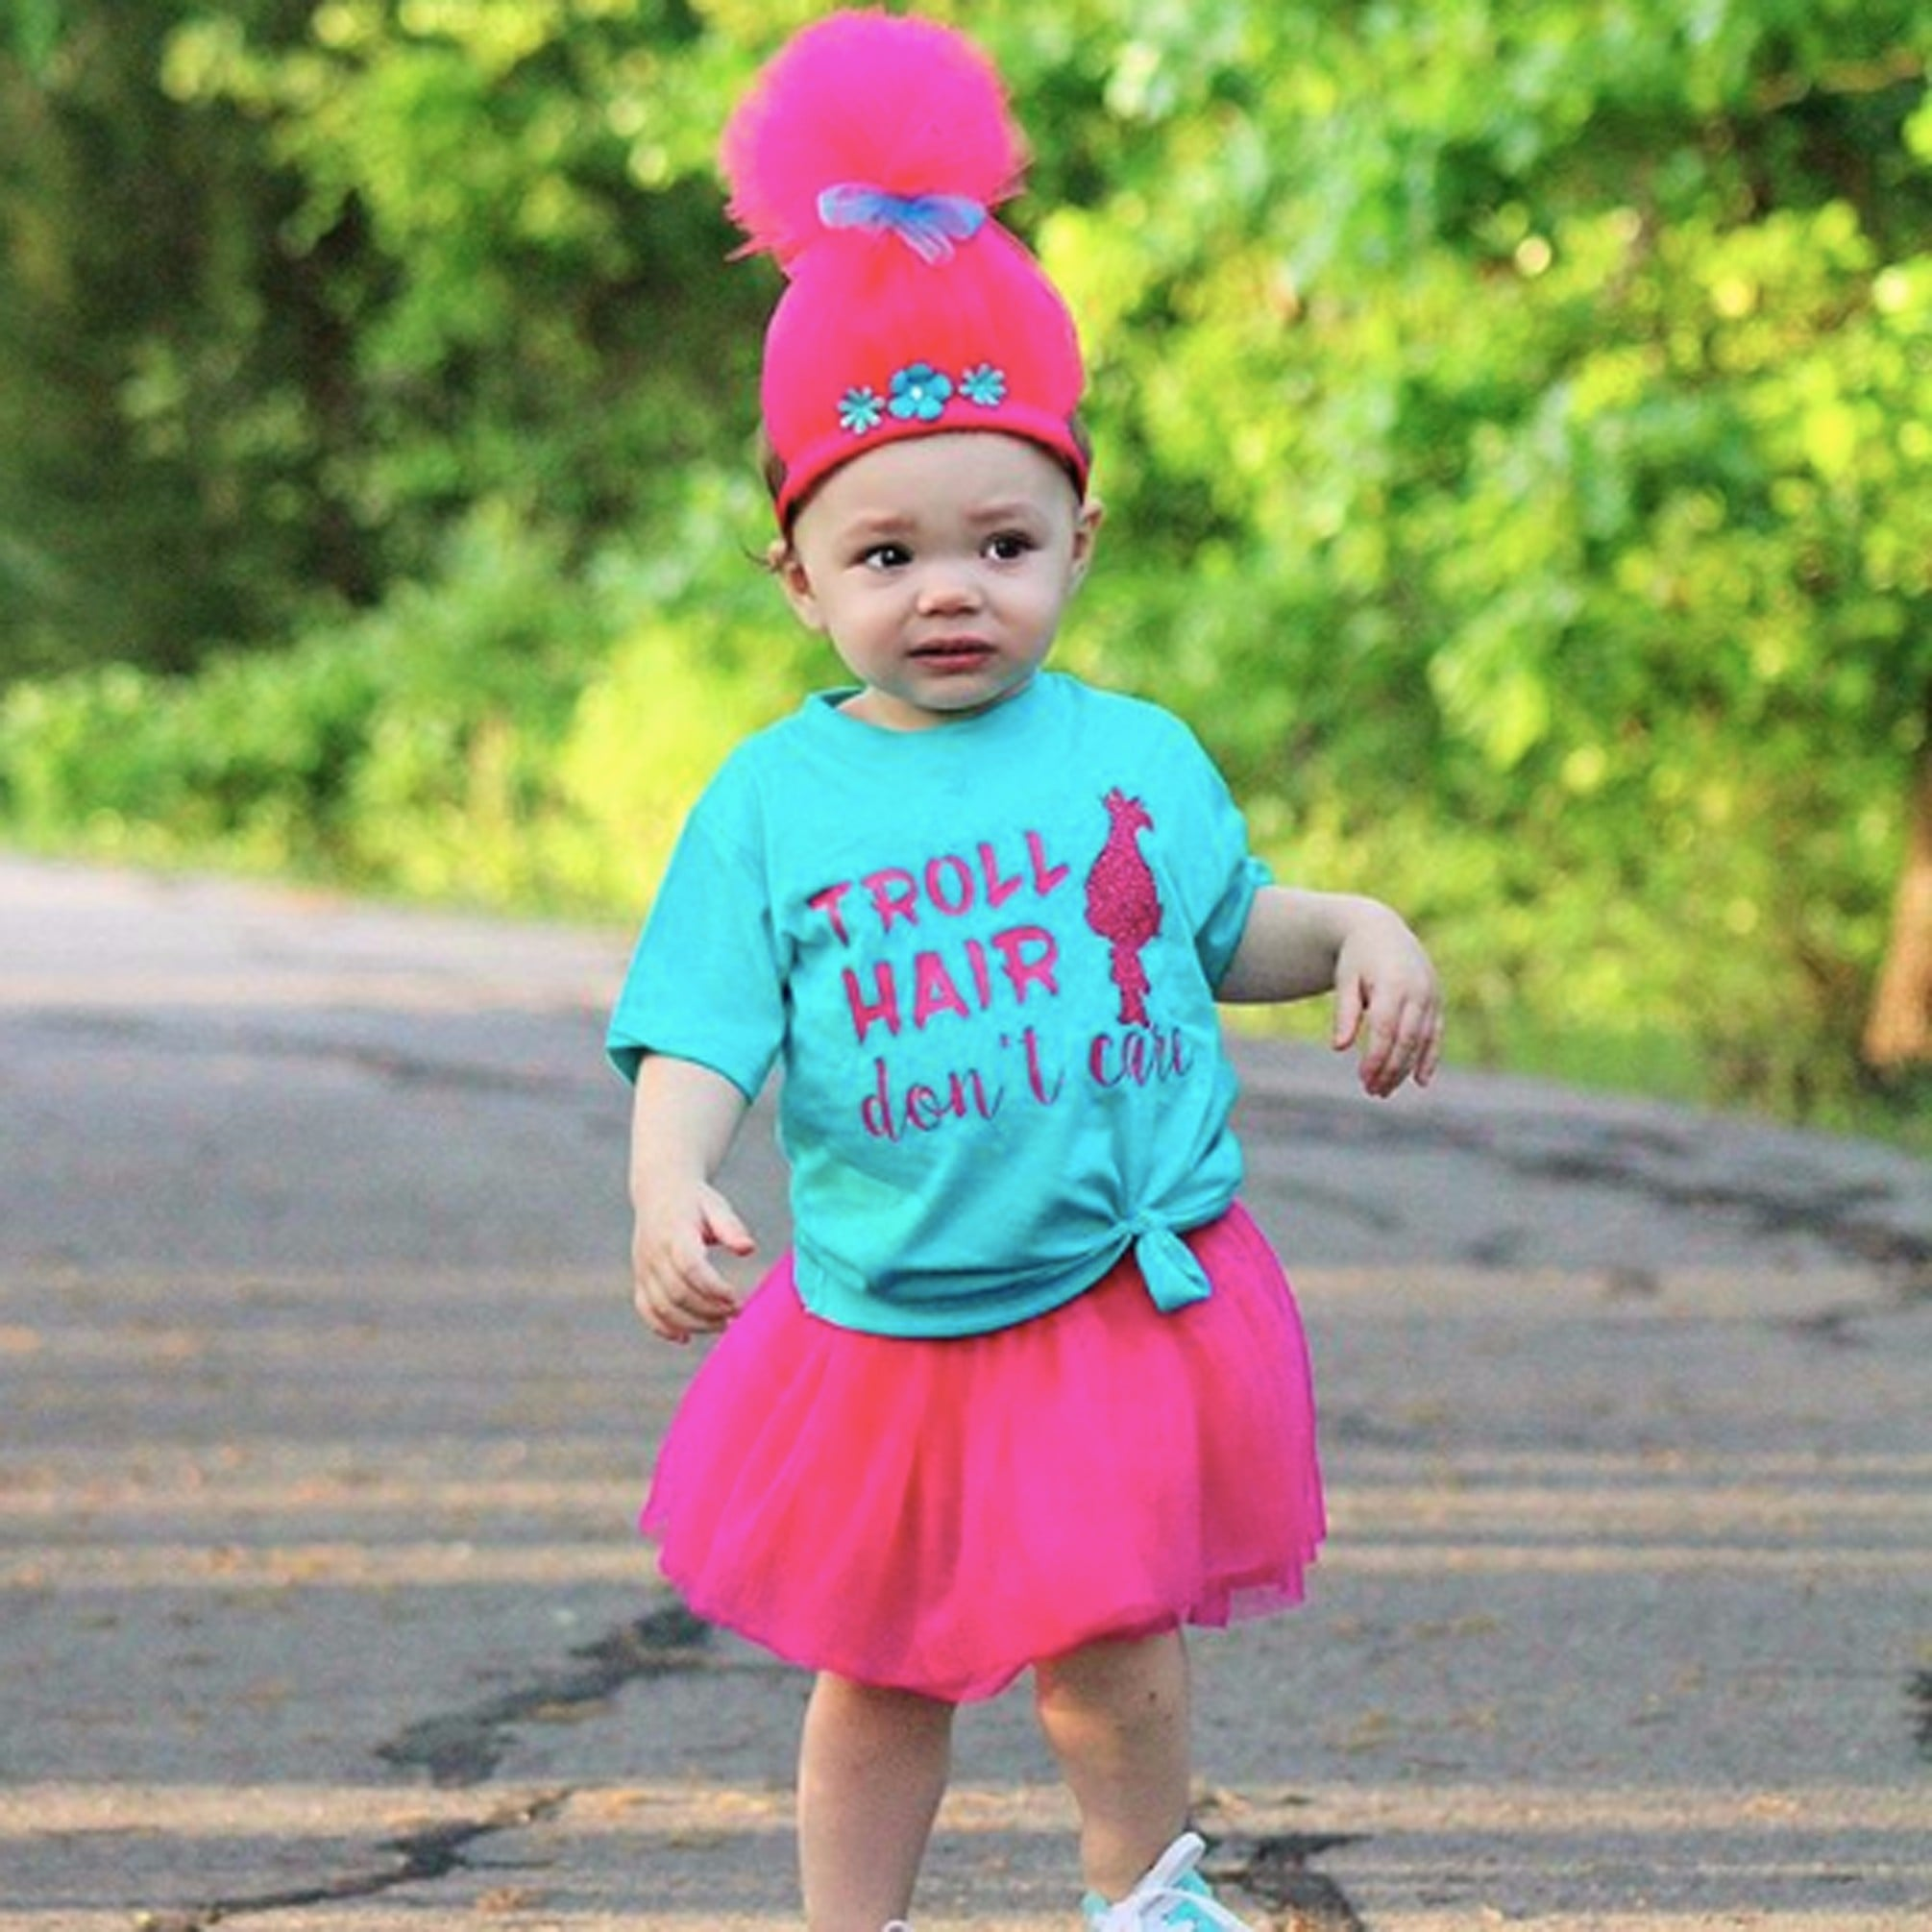 sc 1 st  Popsugar & Troll Halloween Costumes for Kids | POPSUGAR Moms